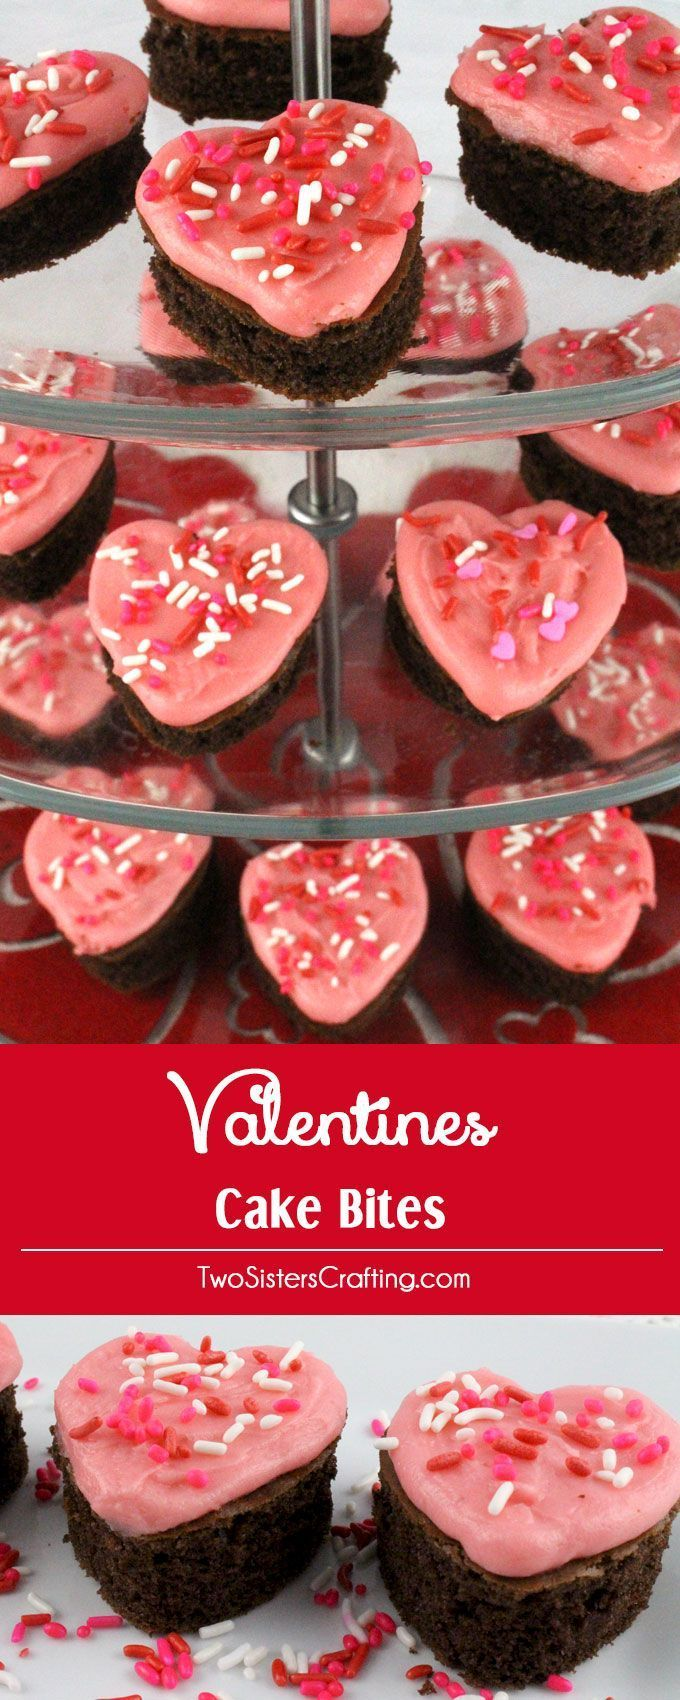 Best 25+ Valentine Day Cupcakes Ideas On Pinterest | Valentine Cupcakes,  DIY Valentineu0027s Cupcakes And Valentines Day Desserts